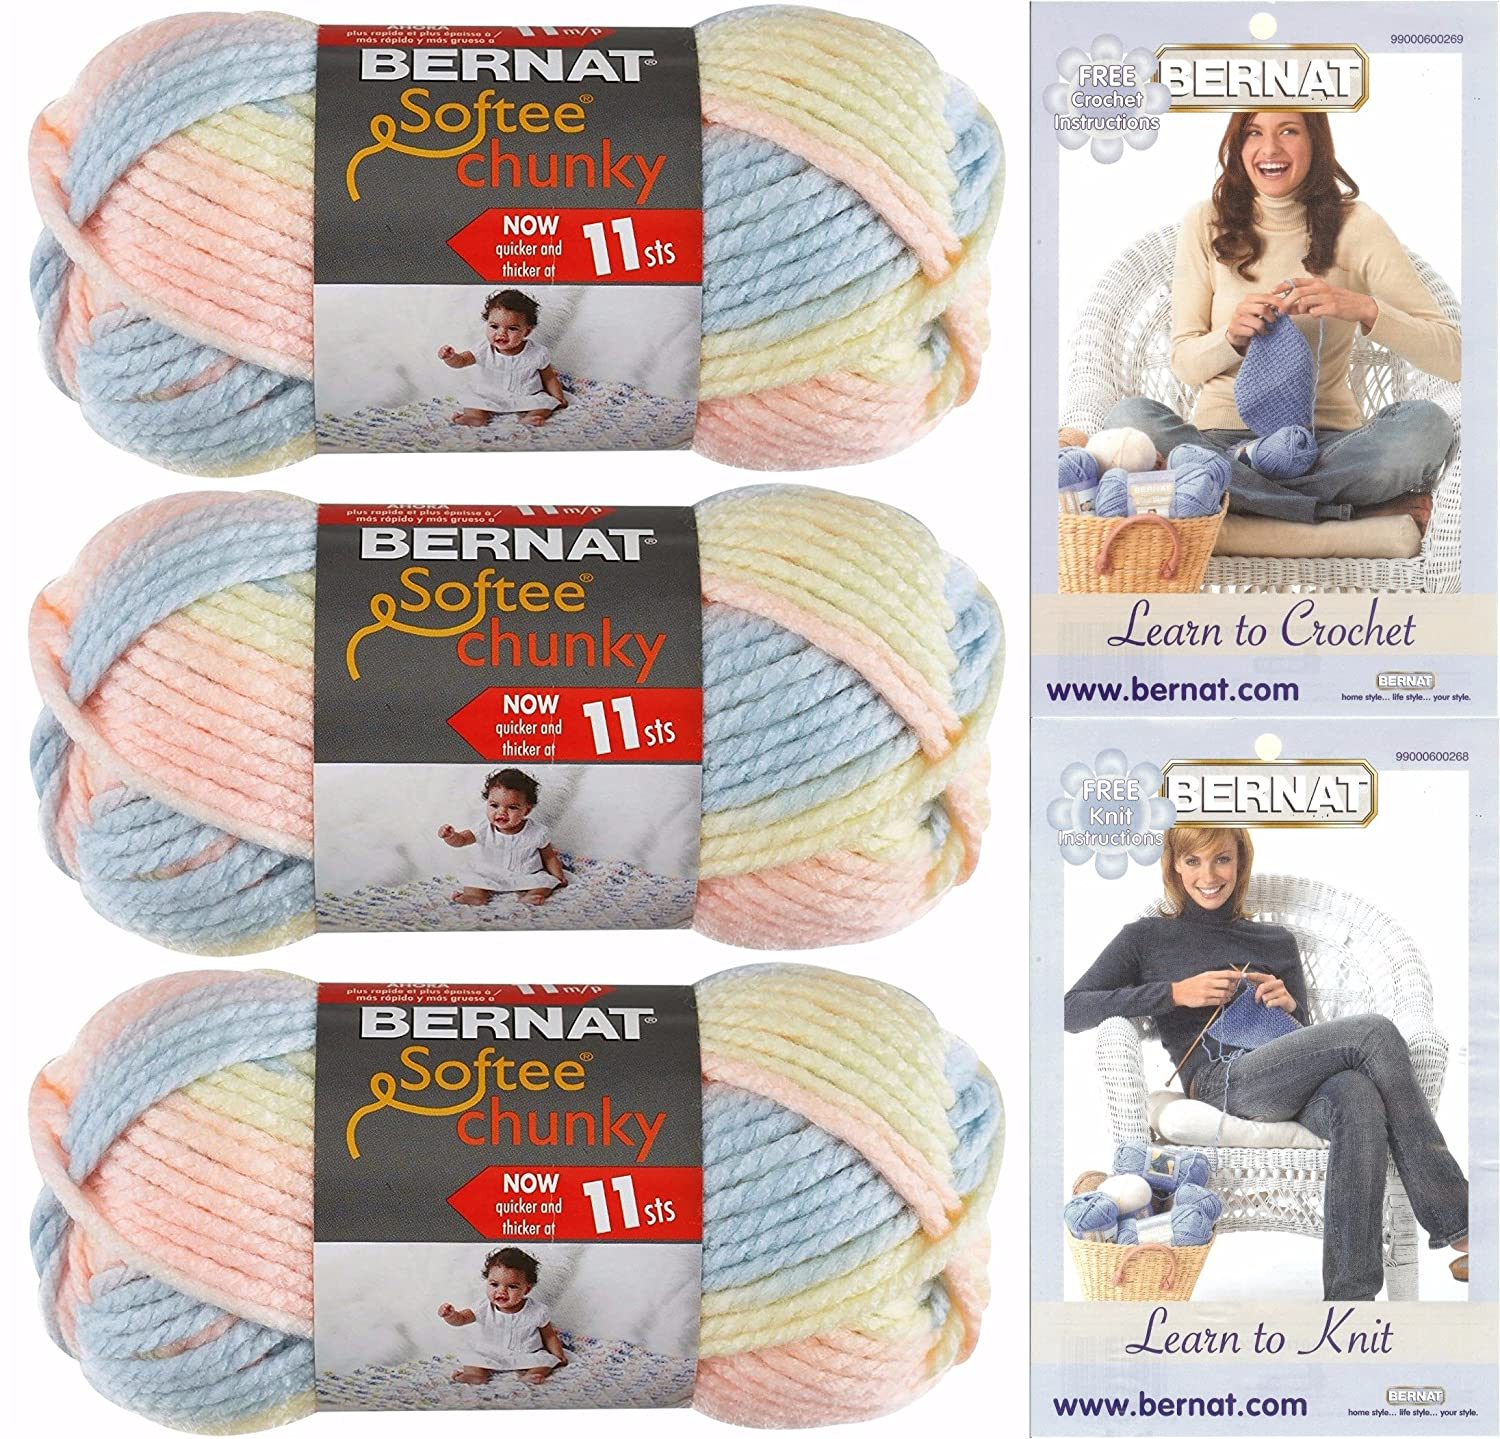 Amazon.com: Bernat Softee Chunky Yarn Bundle Super Bulky #6, 3 ...